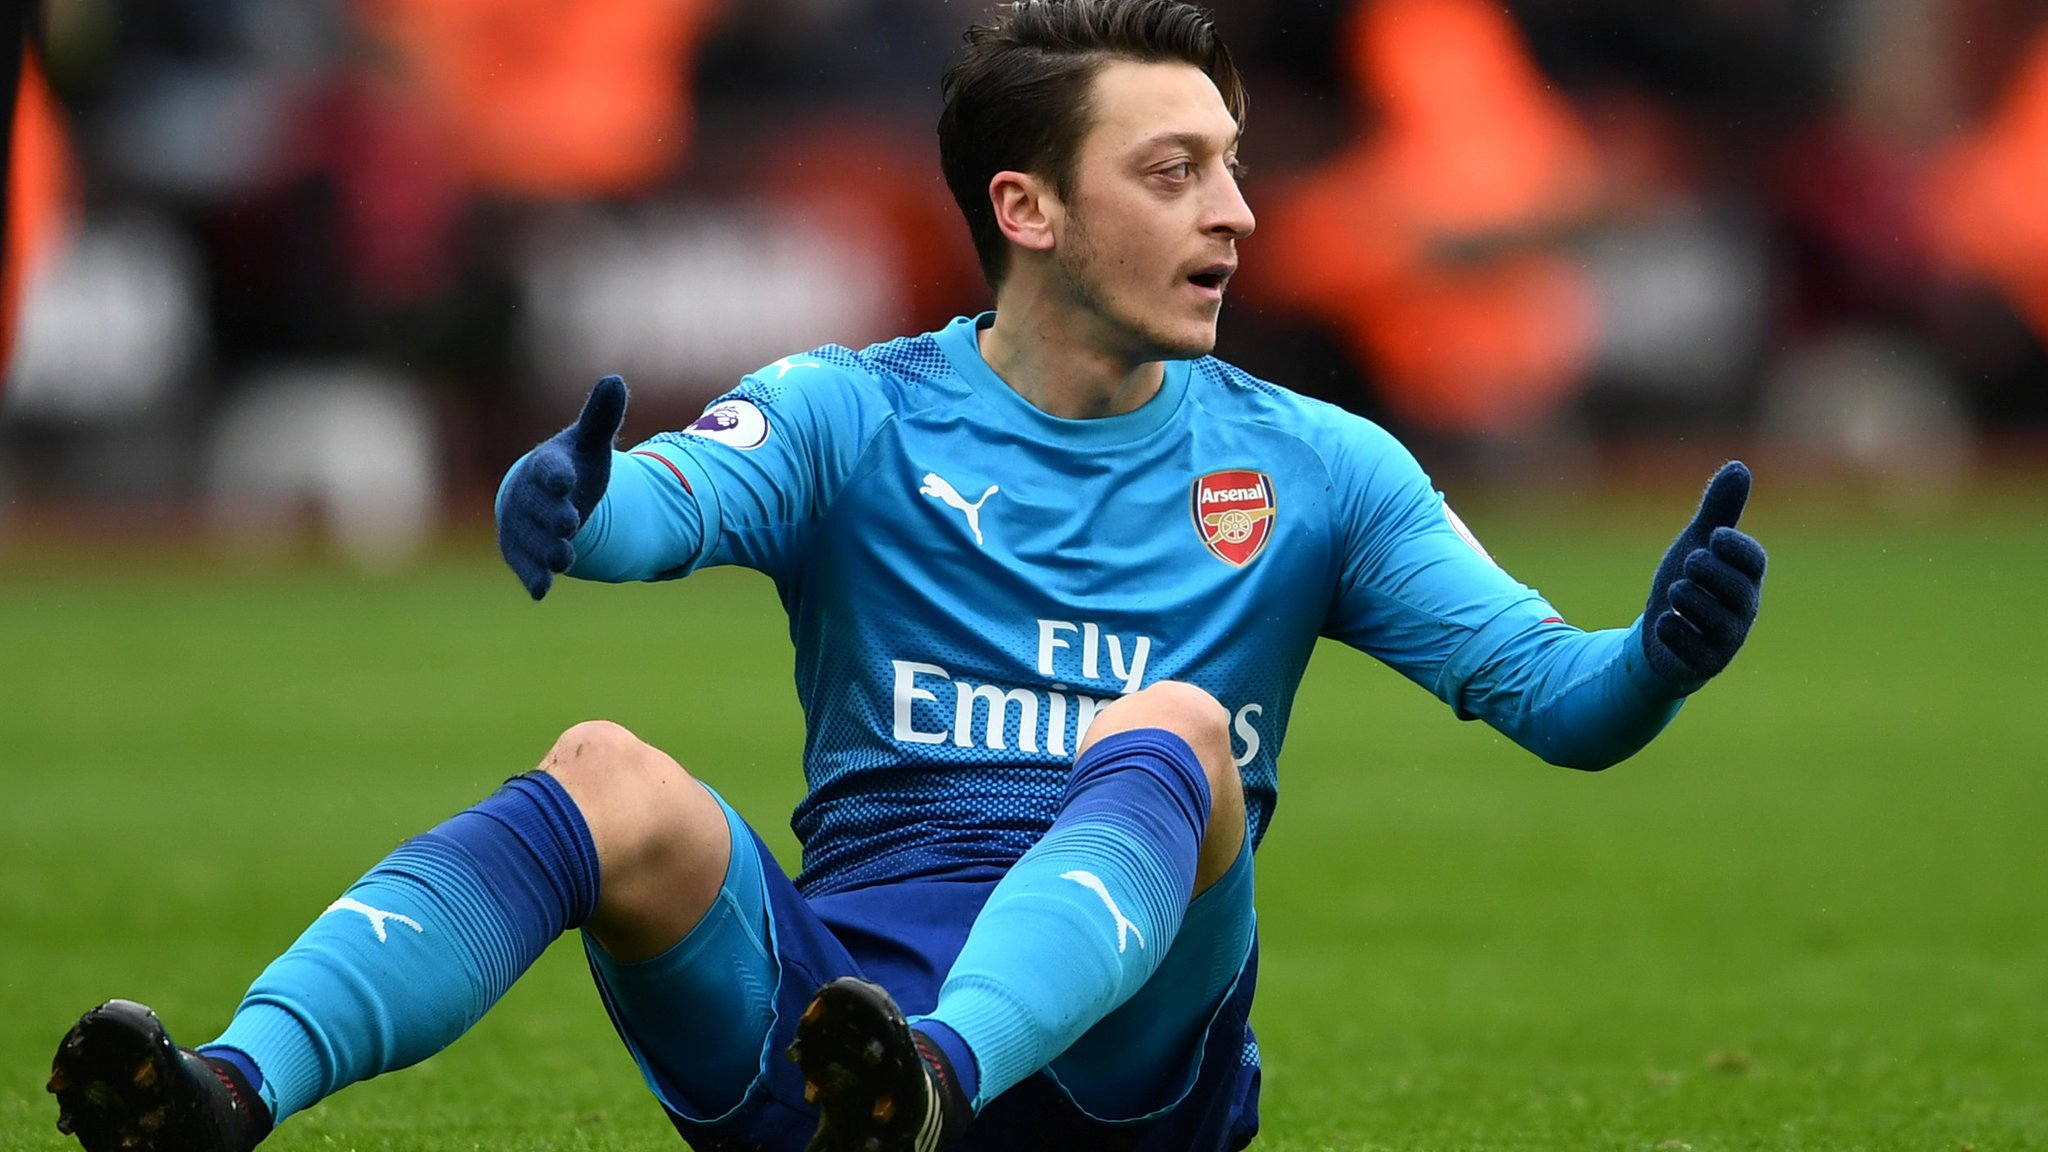 Thursday's gossip column - Ozil favours Man Utd move